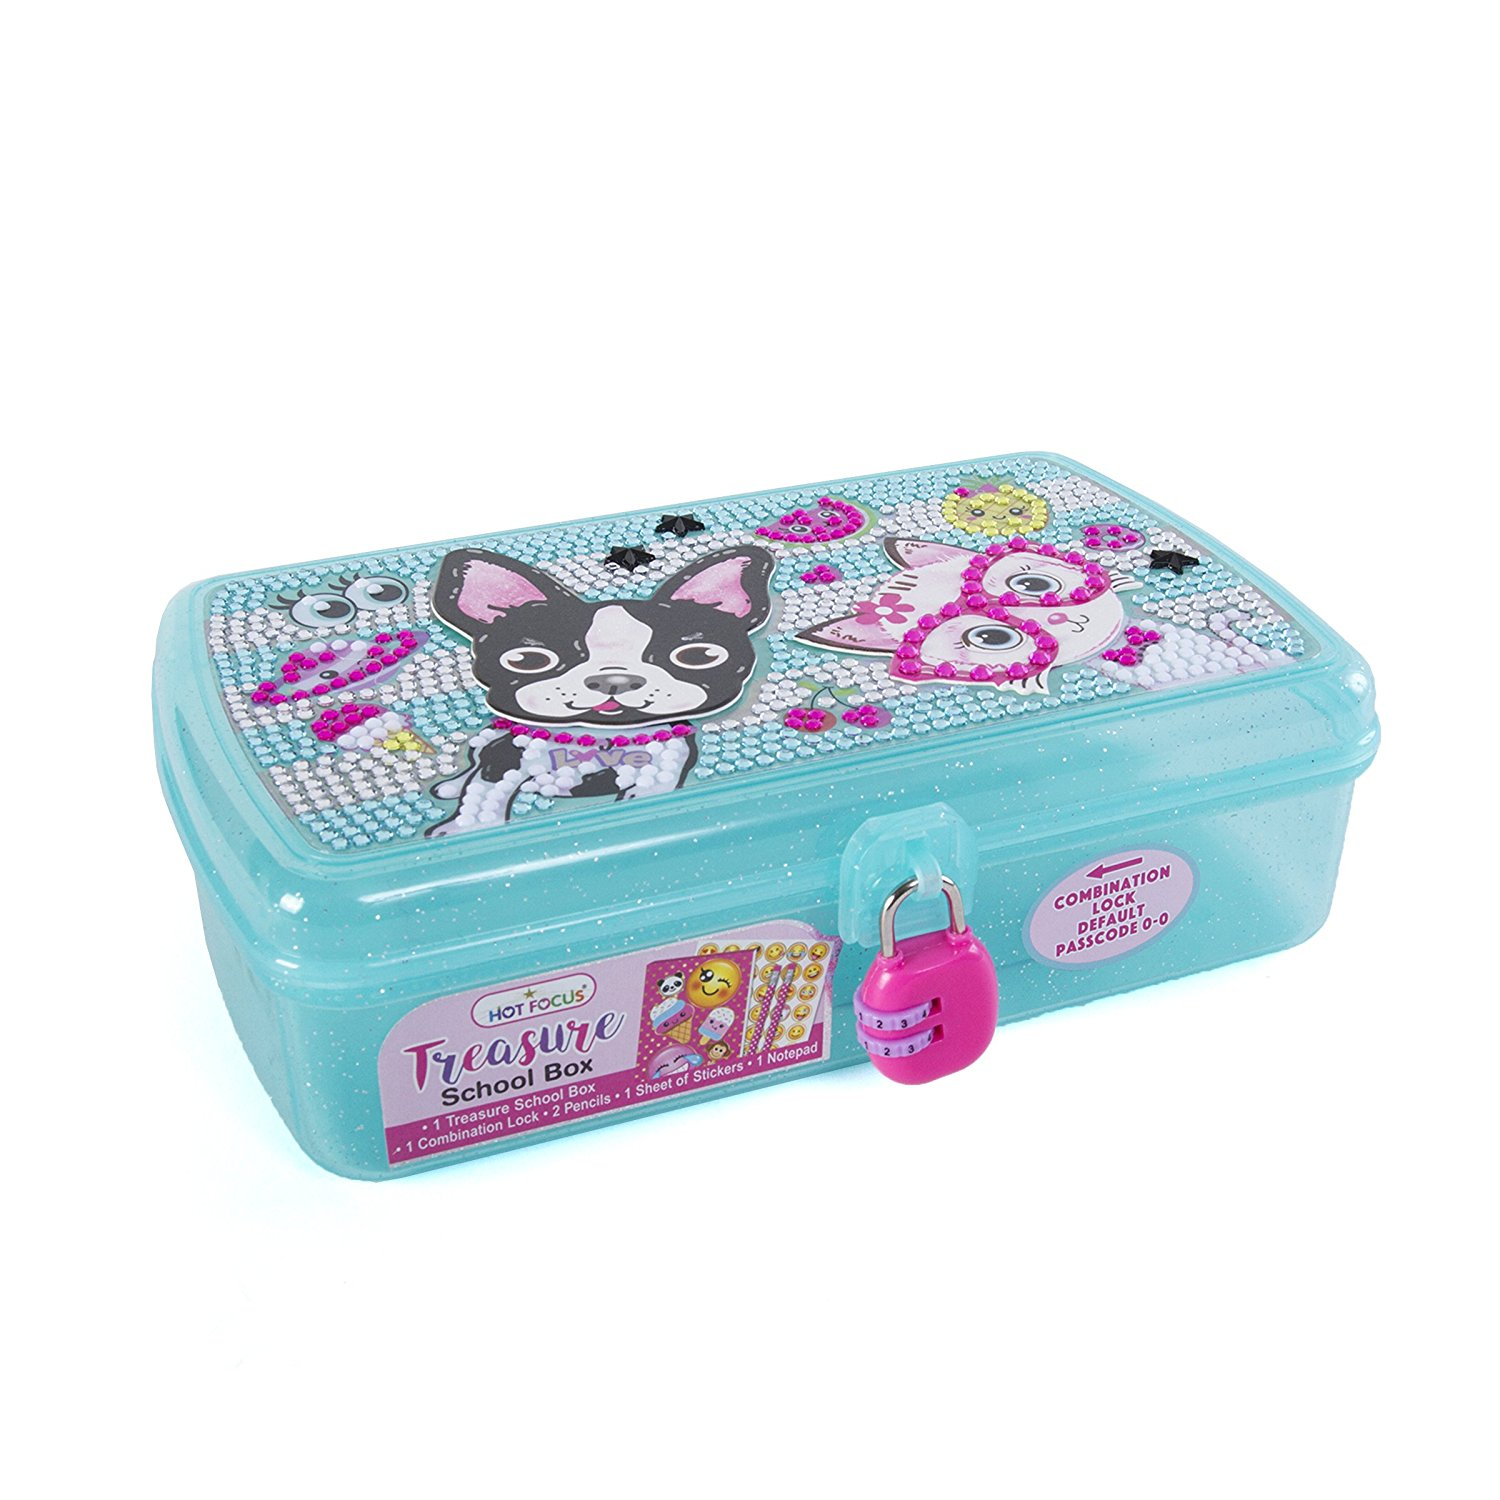 Hot Focus Treasure School Box with Lock Best Pals Girls Pencil Case Box Includes Pencils, Notepad and Stickers